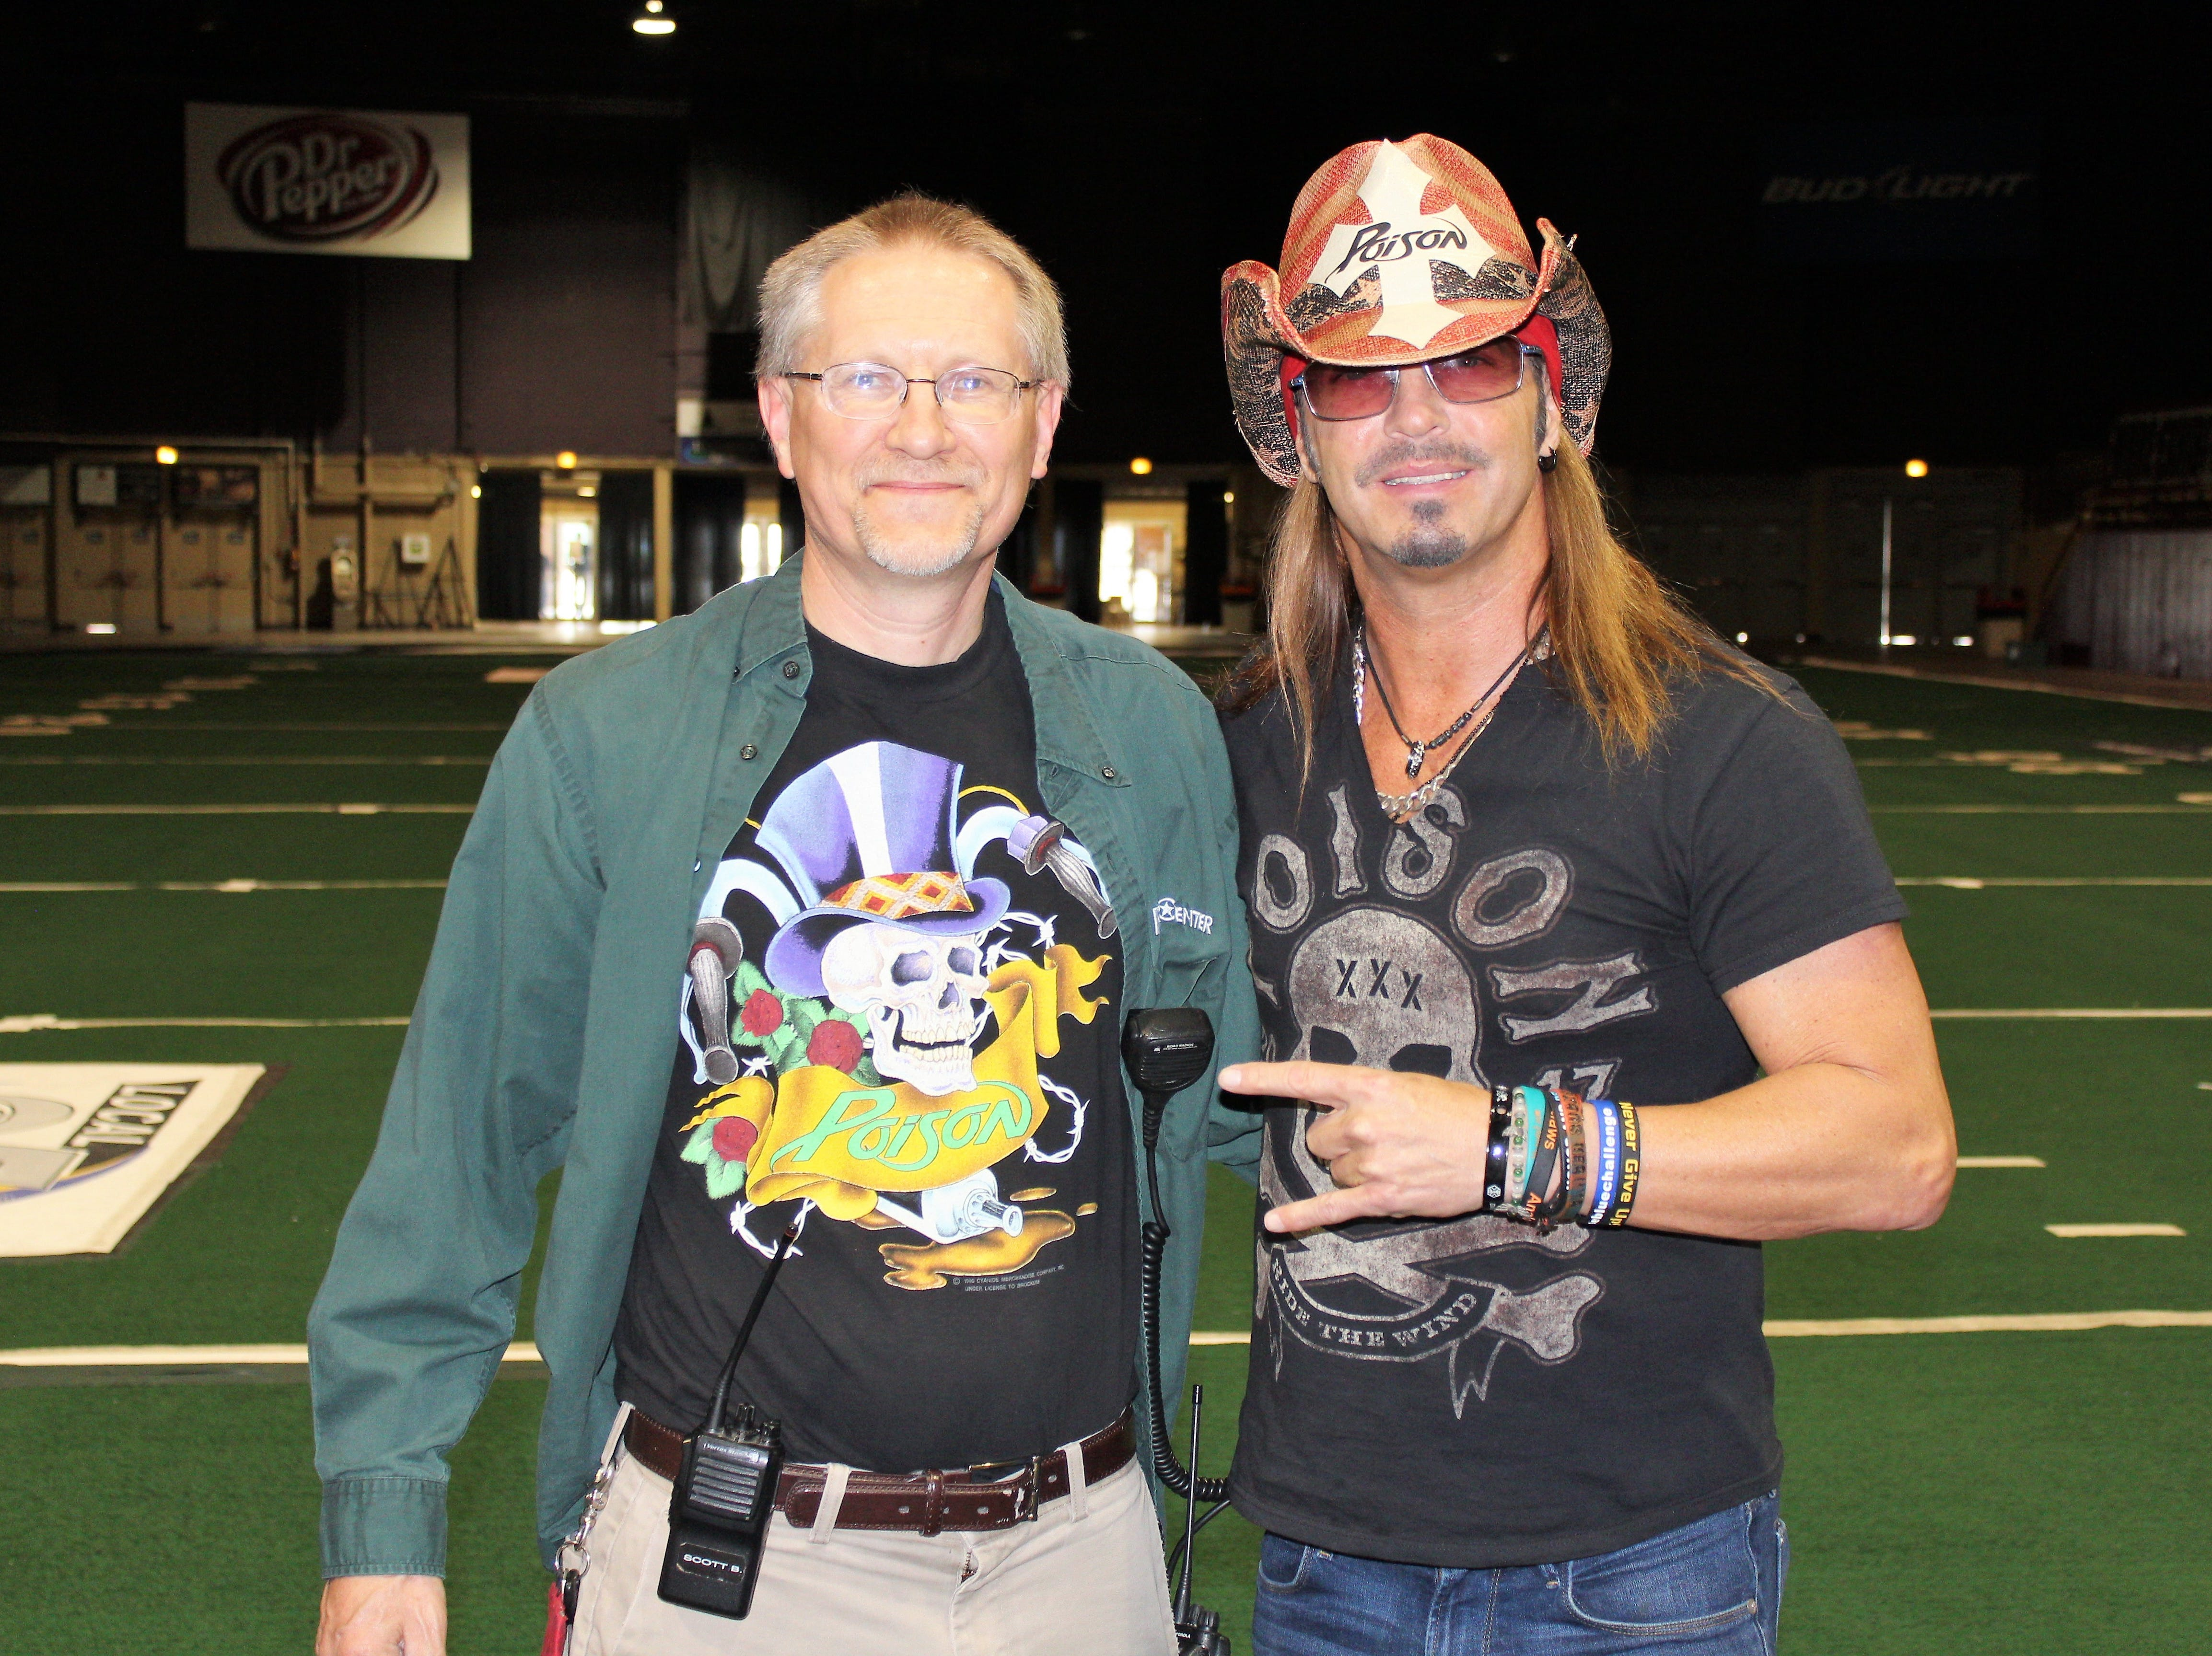 Scott Boesch, event coordinator for PMI Entertainment Group, left, gave Bret Michaels a tour of Brown County Veterans Memorial Arena before Poison's sold-out show with Def Leppard at the Resch Center in 2017.